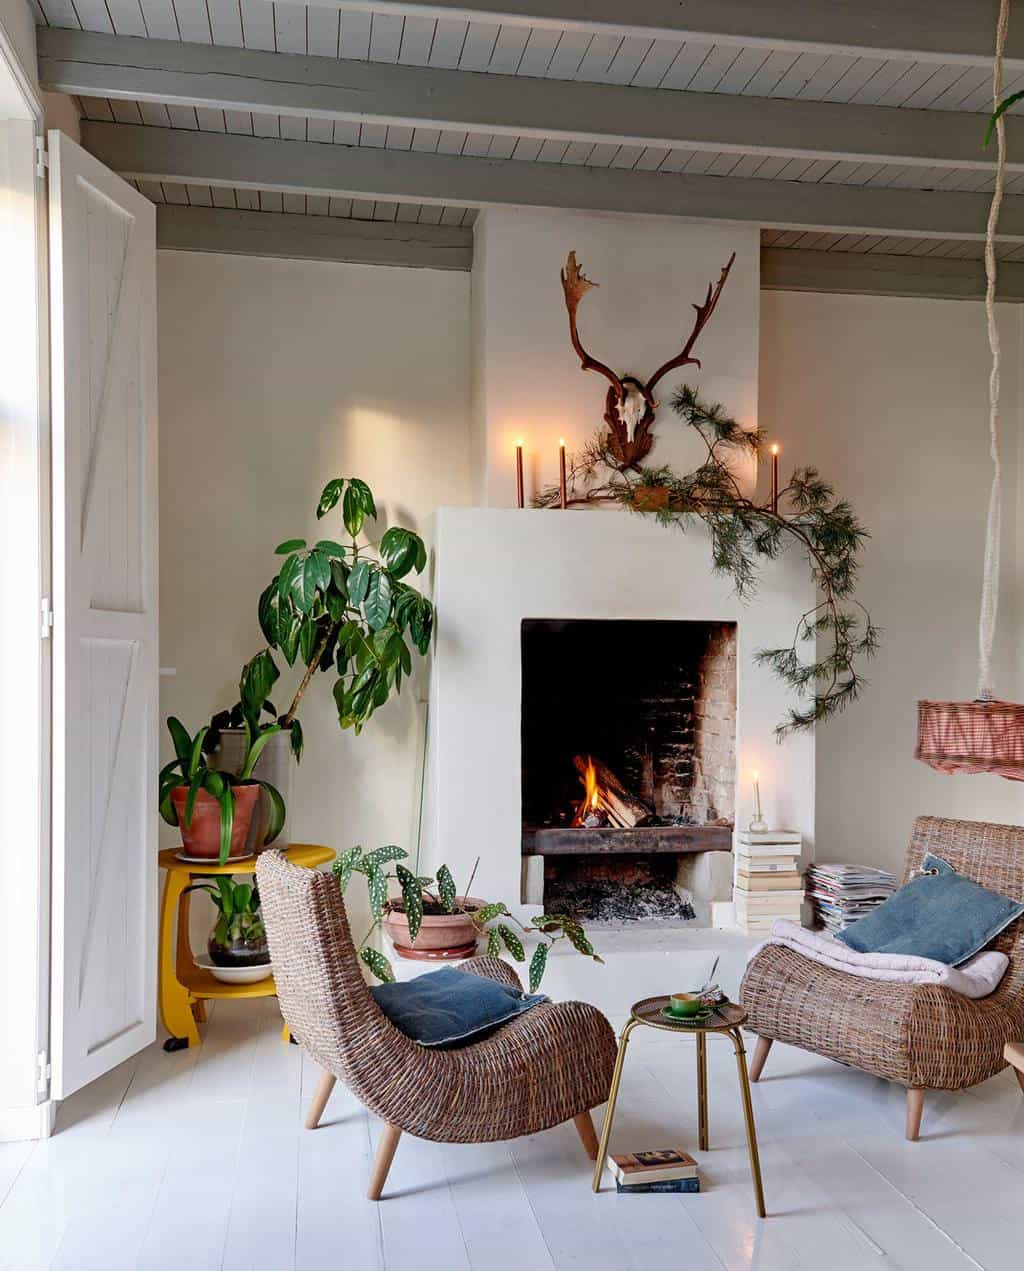 converted-farmhouse-living-room-Christmas-decorations